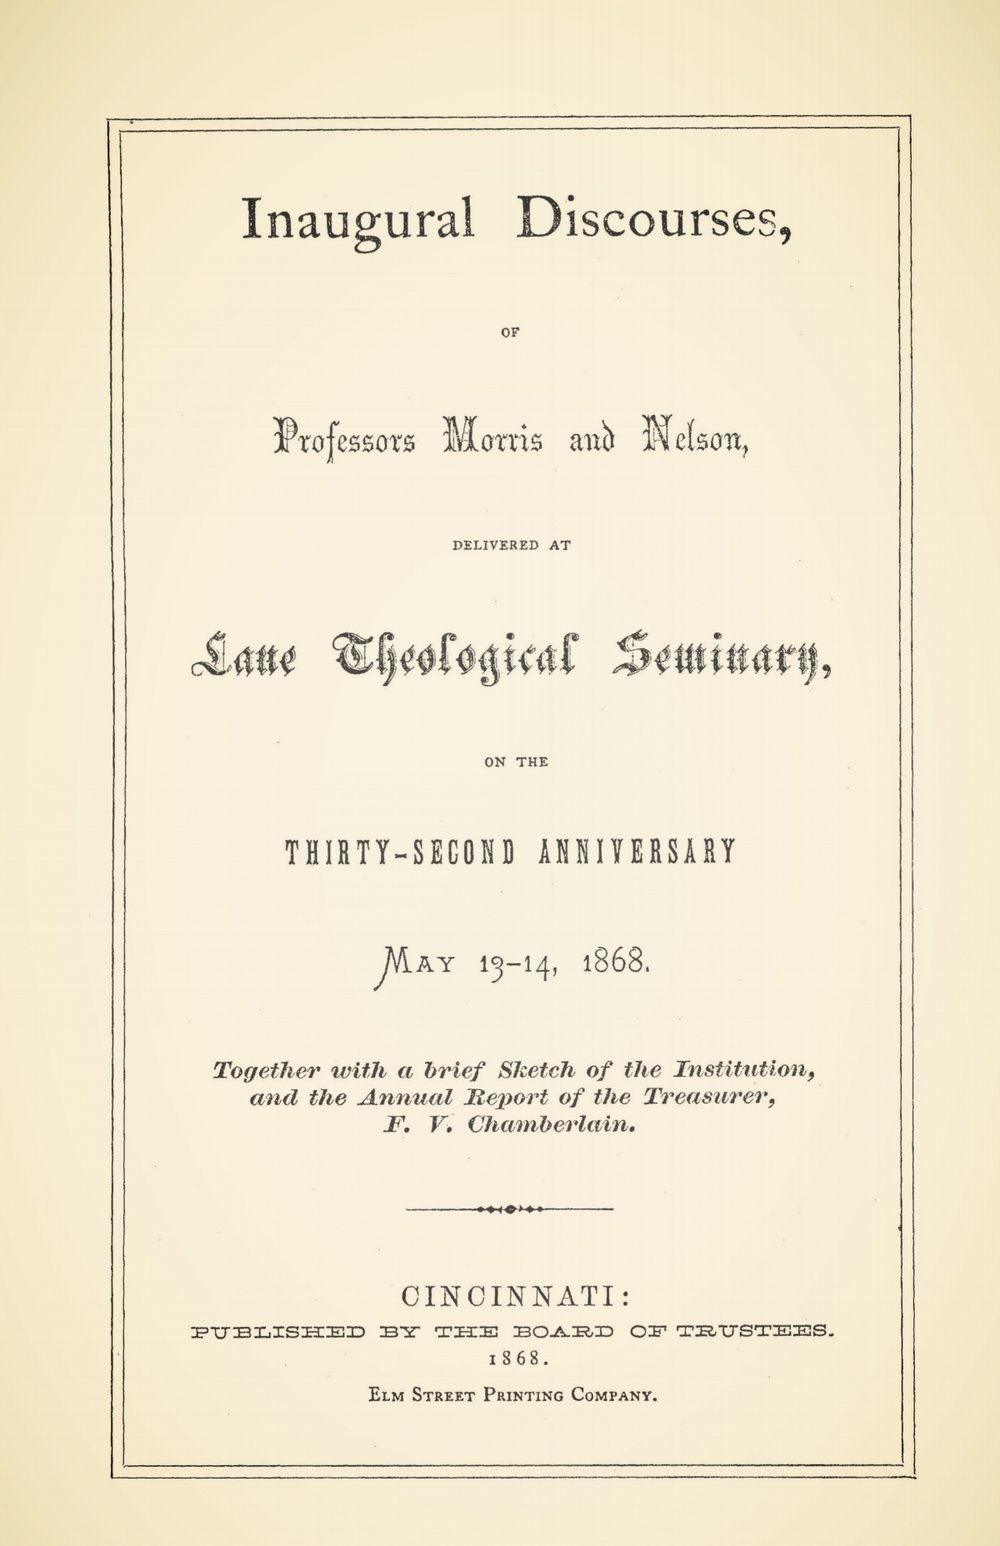 Morris, Edward Dafydd, Inaugural Discourses Title Page.jpg